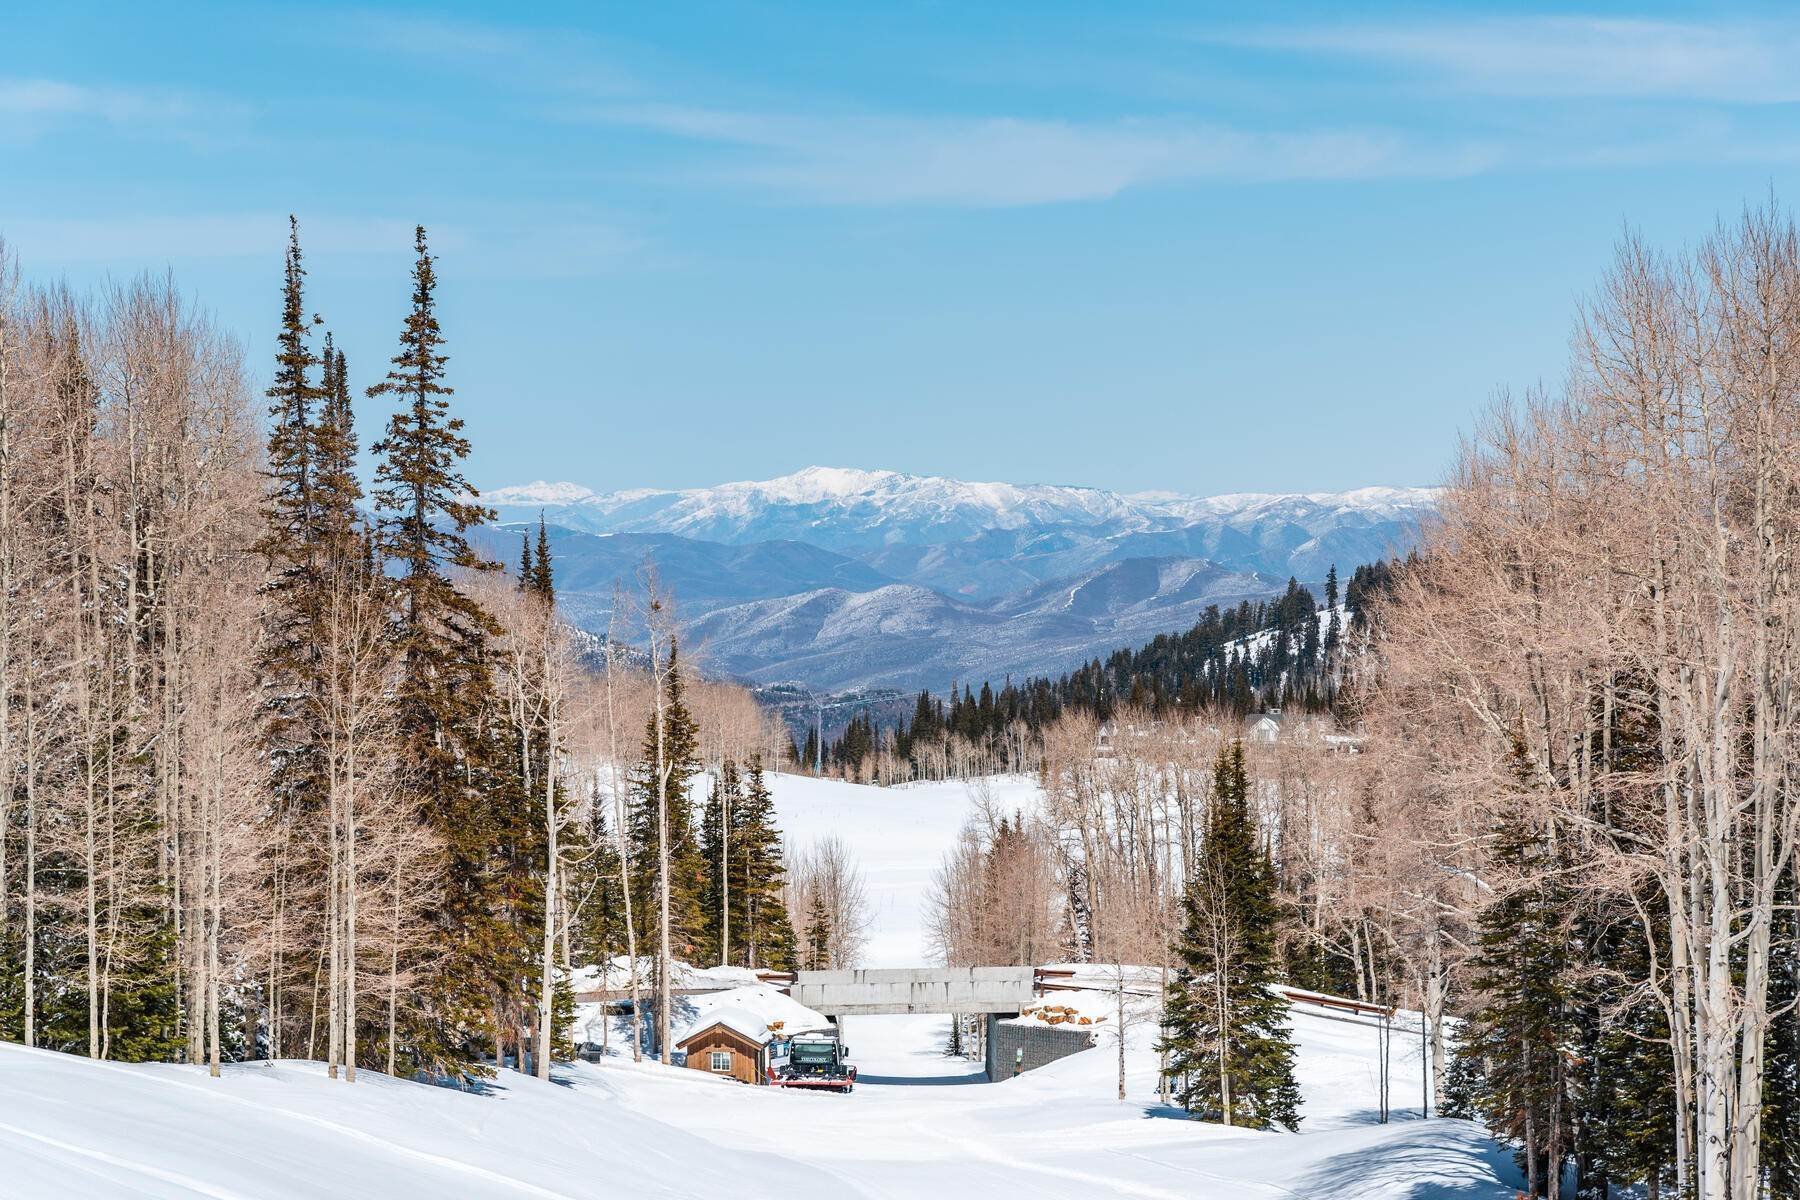 Land for Sale at Rare Park City Residential Development Opportunity on 80.51 Acres 331 White Pine Canyon Rd Park City, Utah 84060 United States